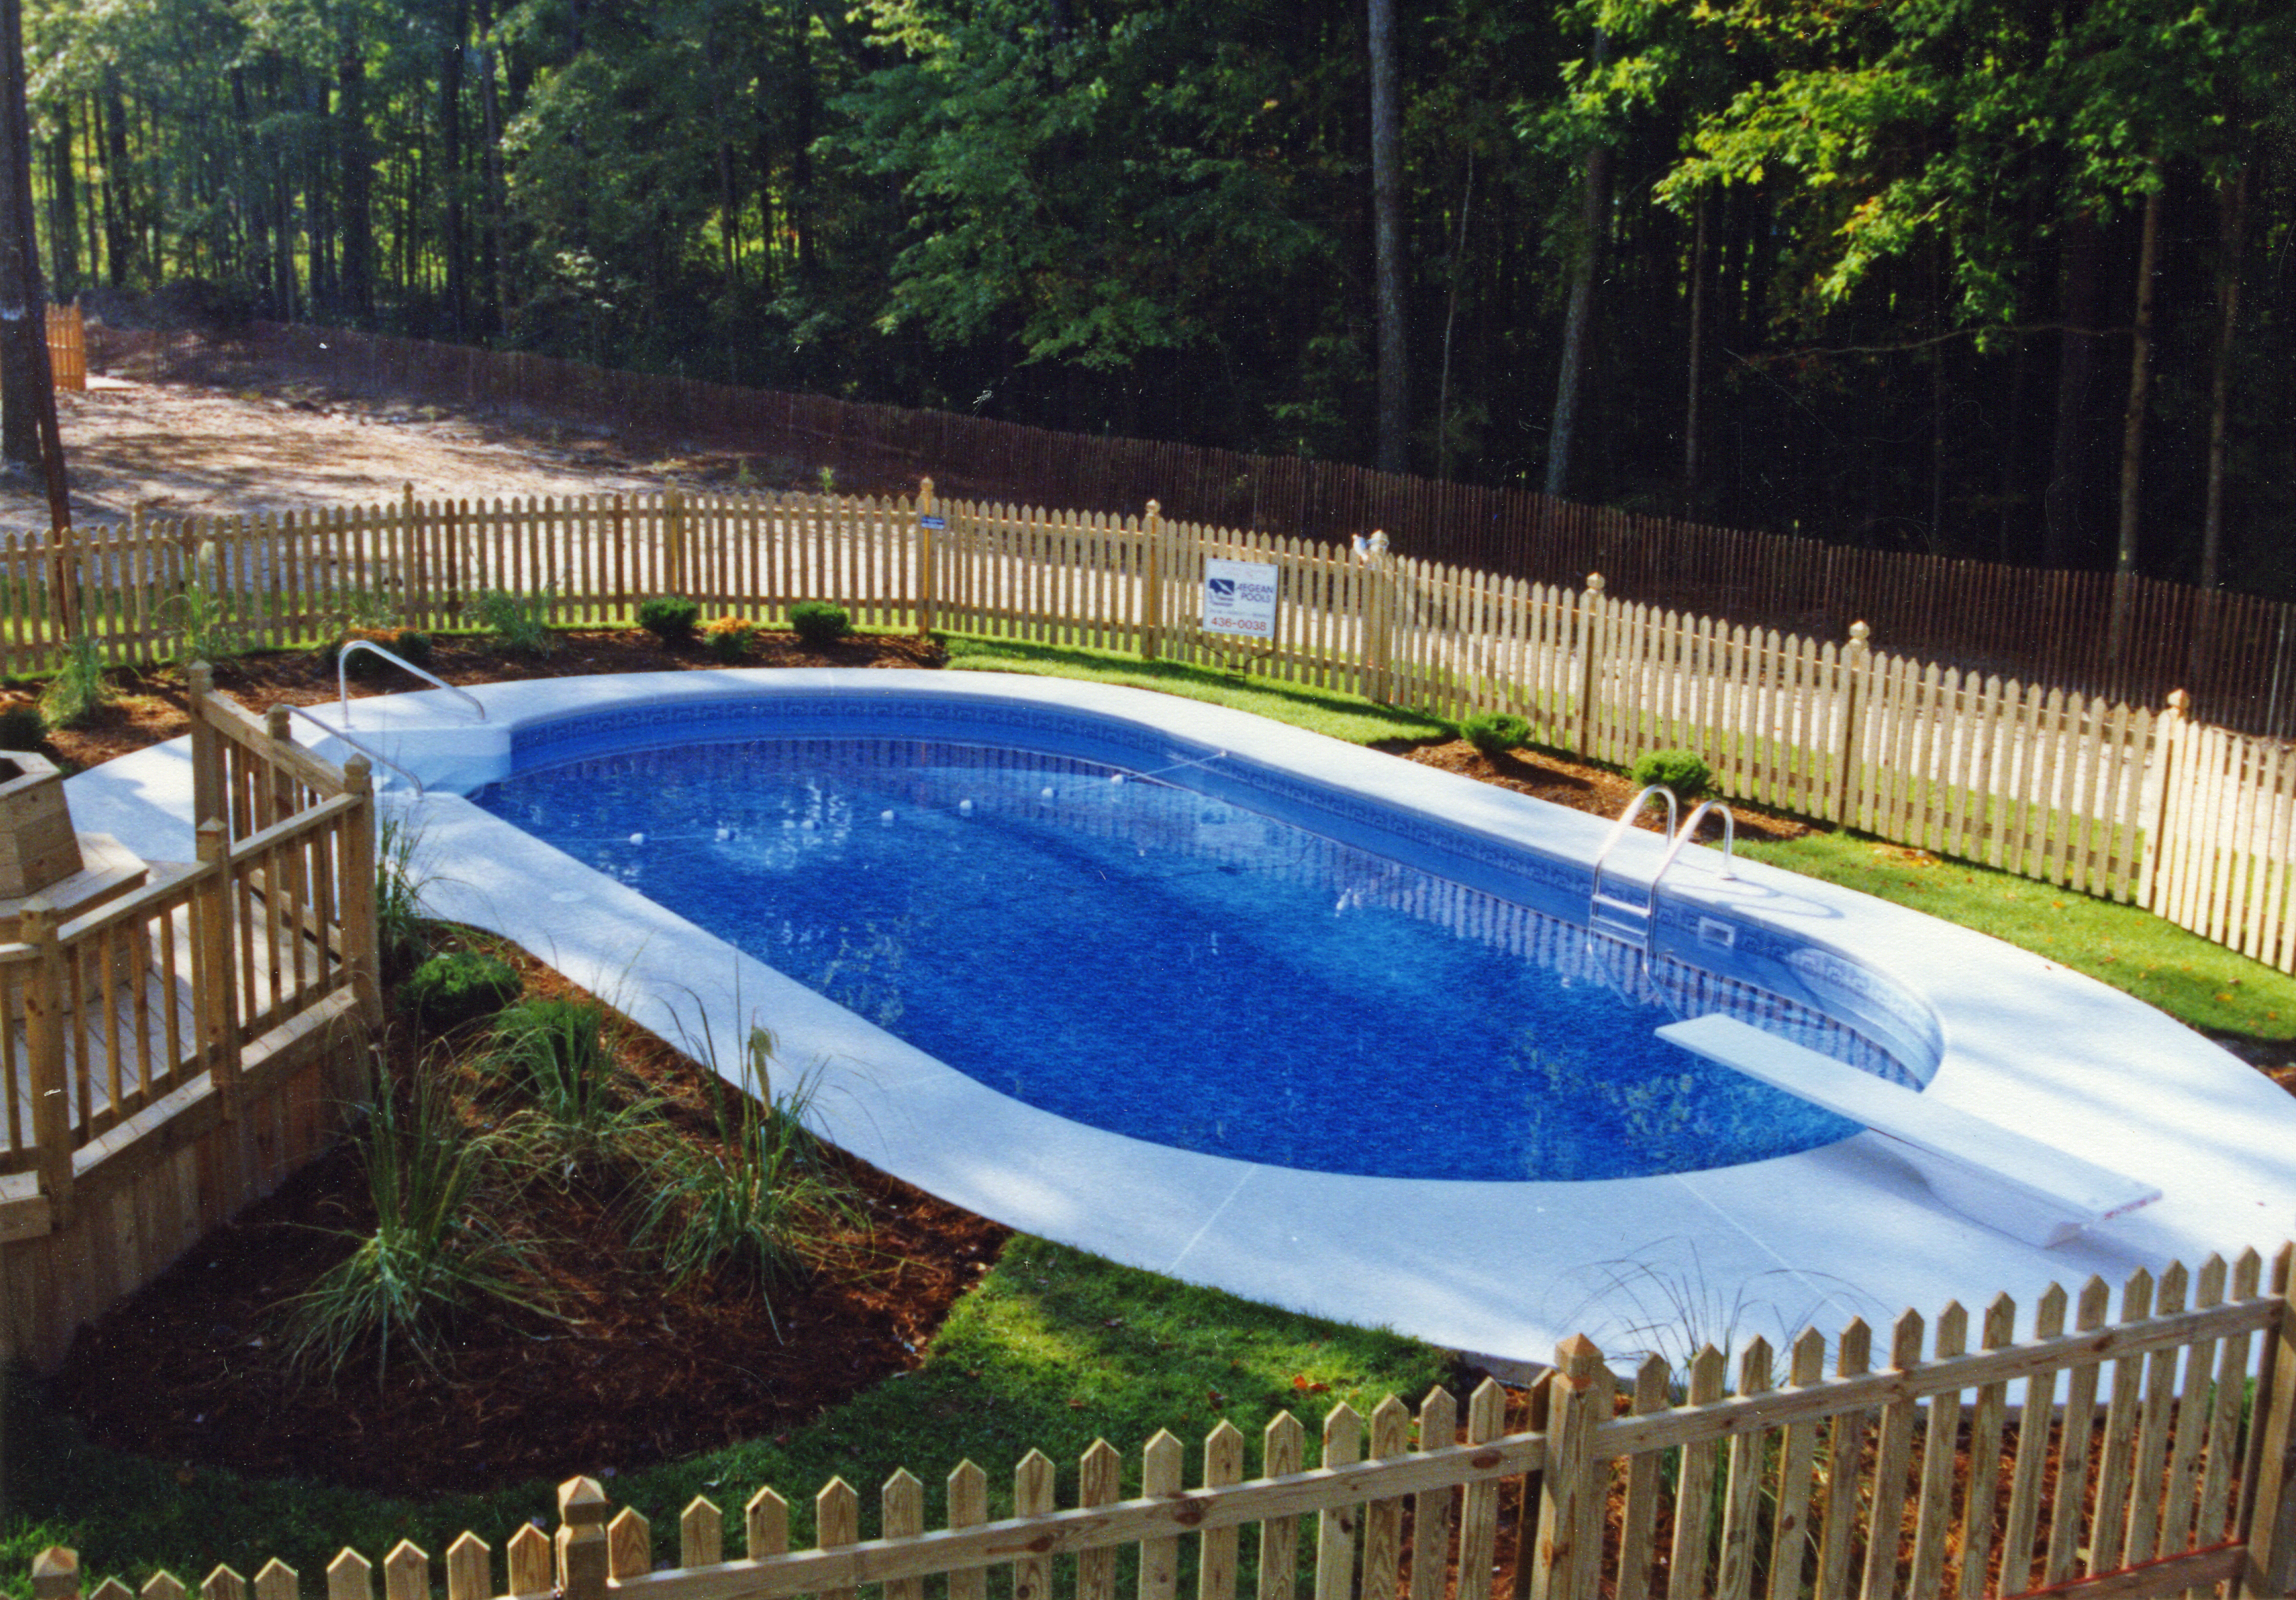 Oval liner pool 1